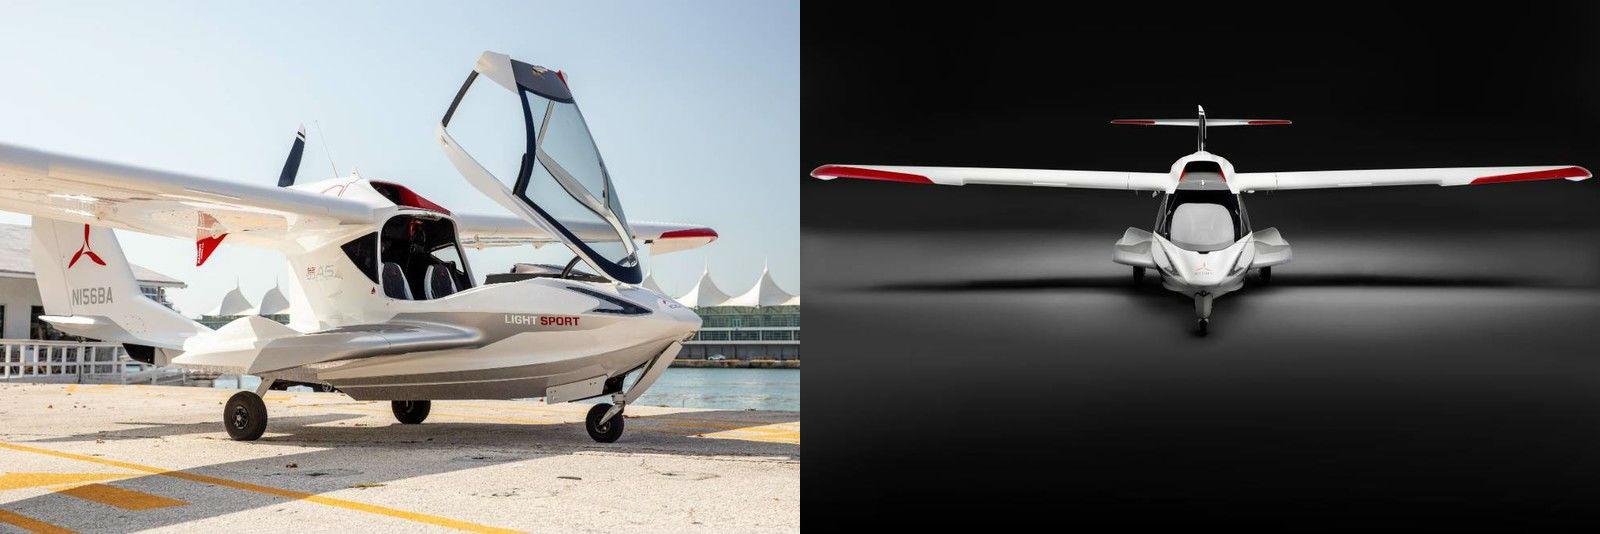 2019 ICON A5 Aircraft Exterior Passenger Side Front Profile & Front View